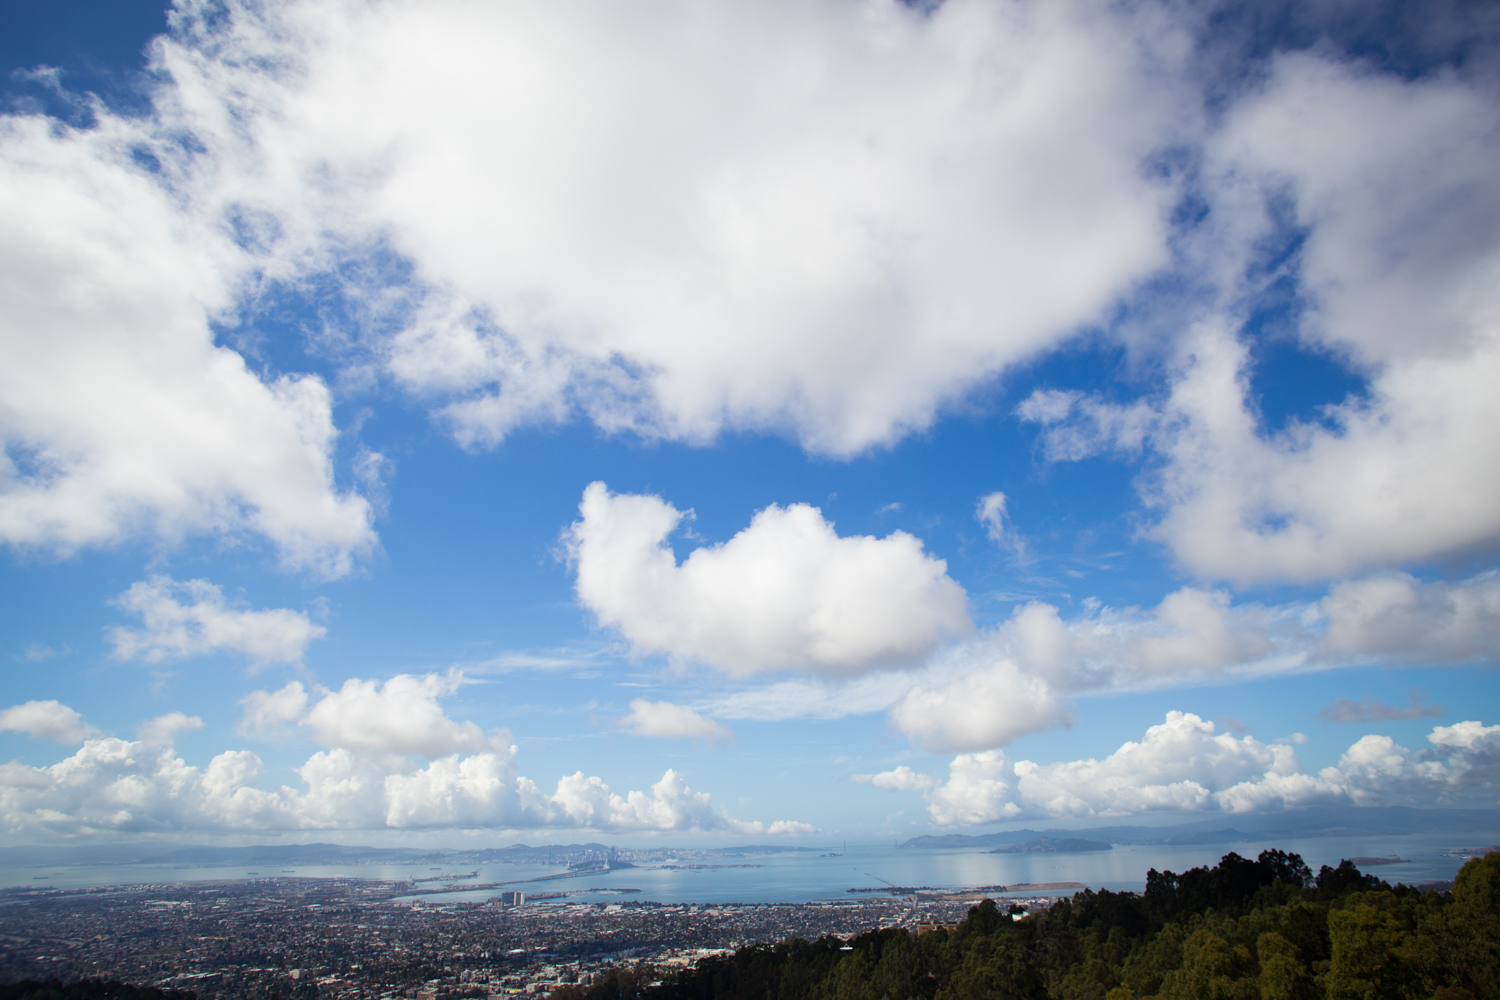 Bay Area view from Berkeley Hills